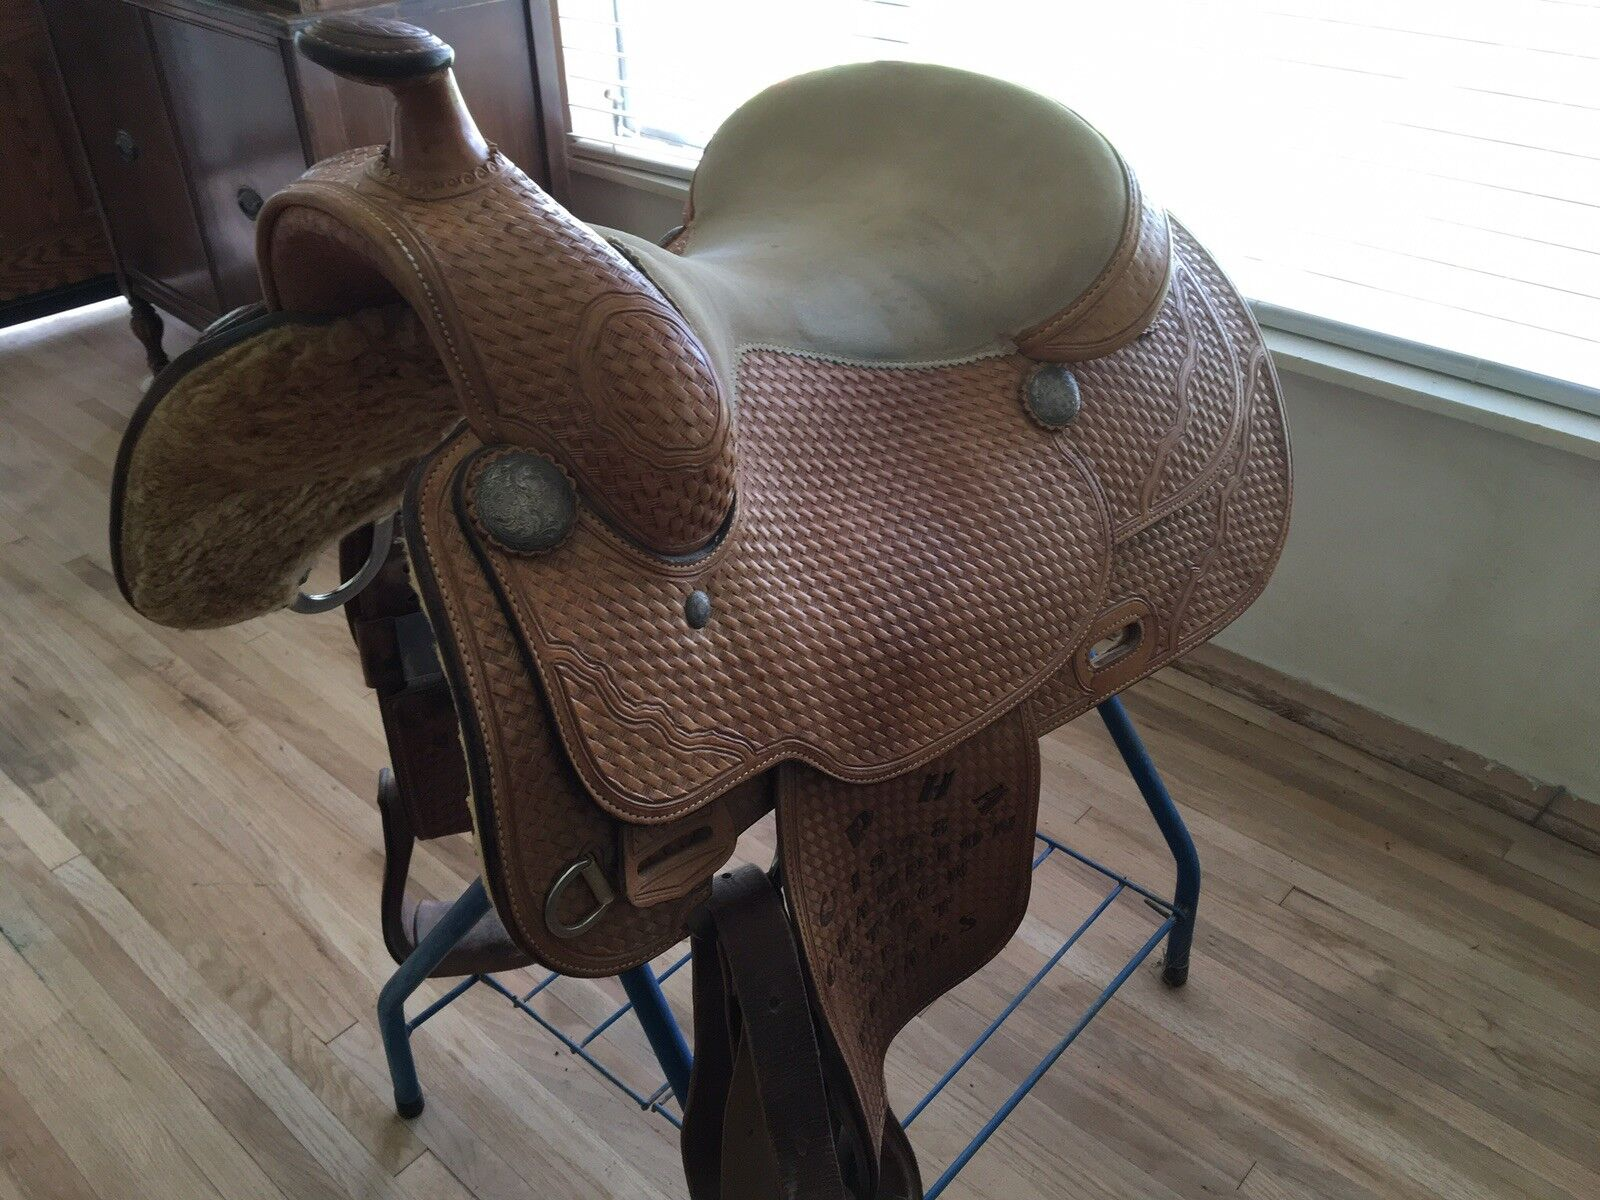 Broken Horn Show Saddle 15 Inch Excellent Condition